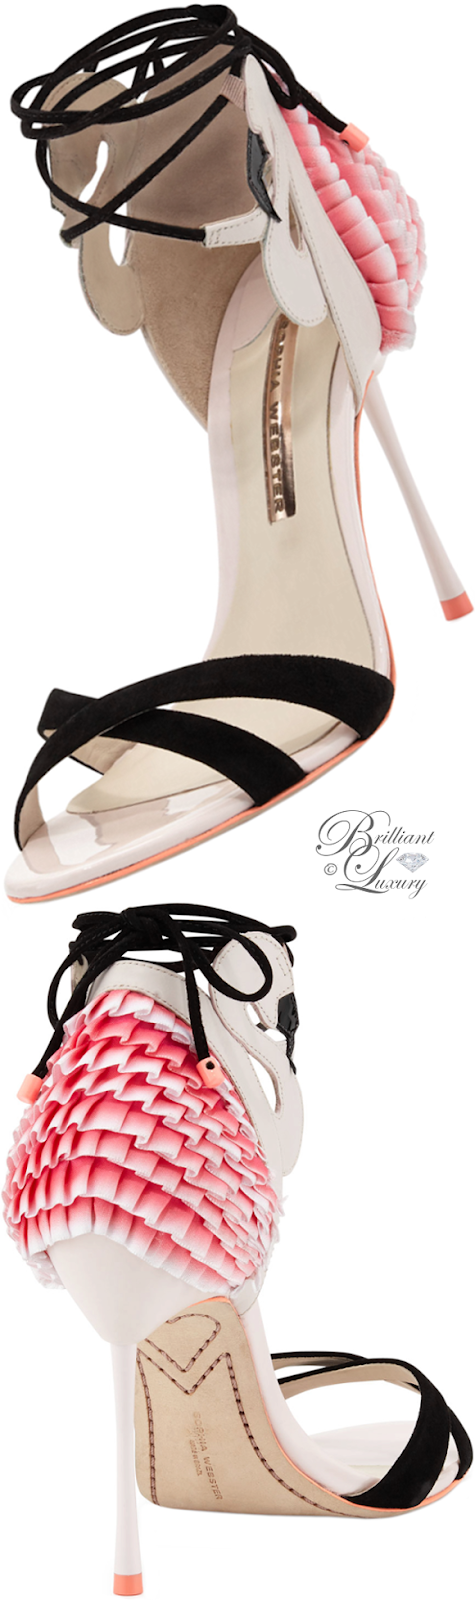 Brilliant Luxury ♦ Sophia Webster Flamingo frill ankle-wrap sandal